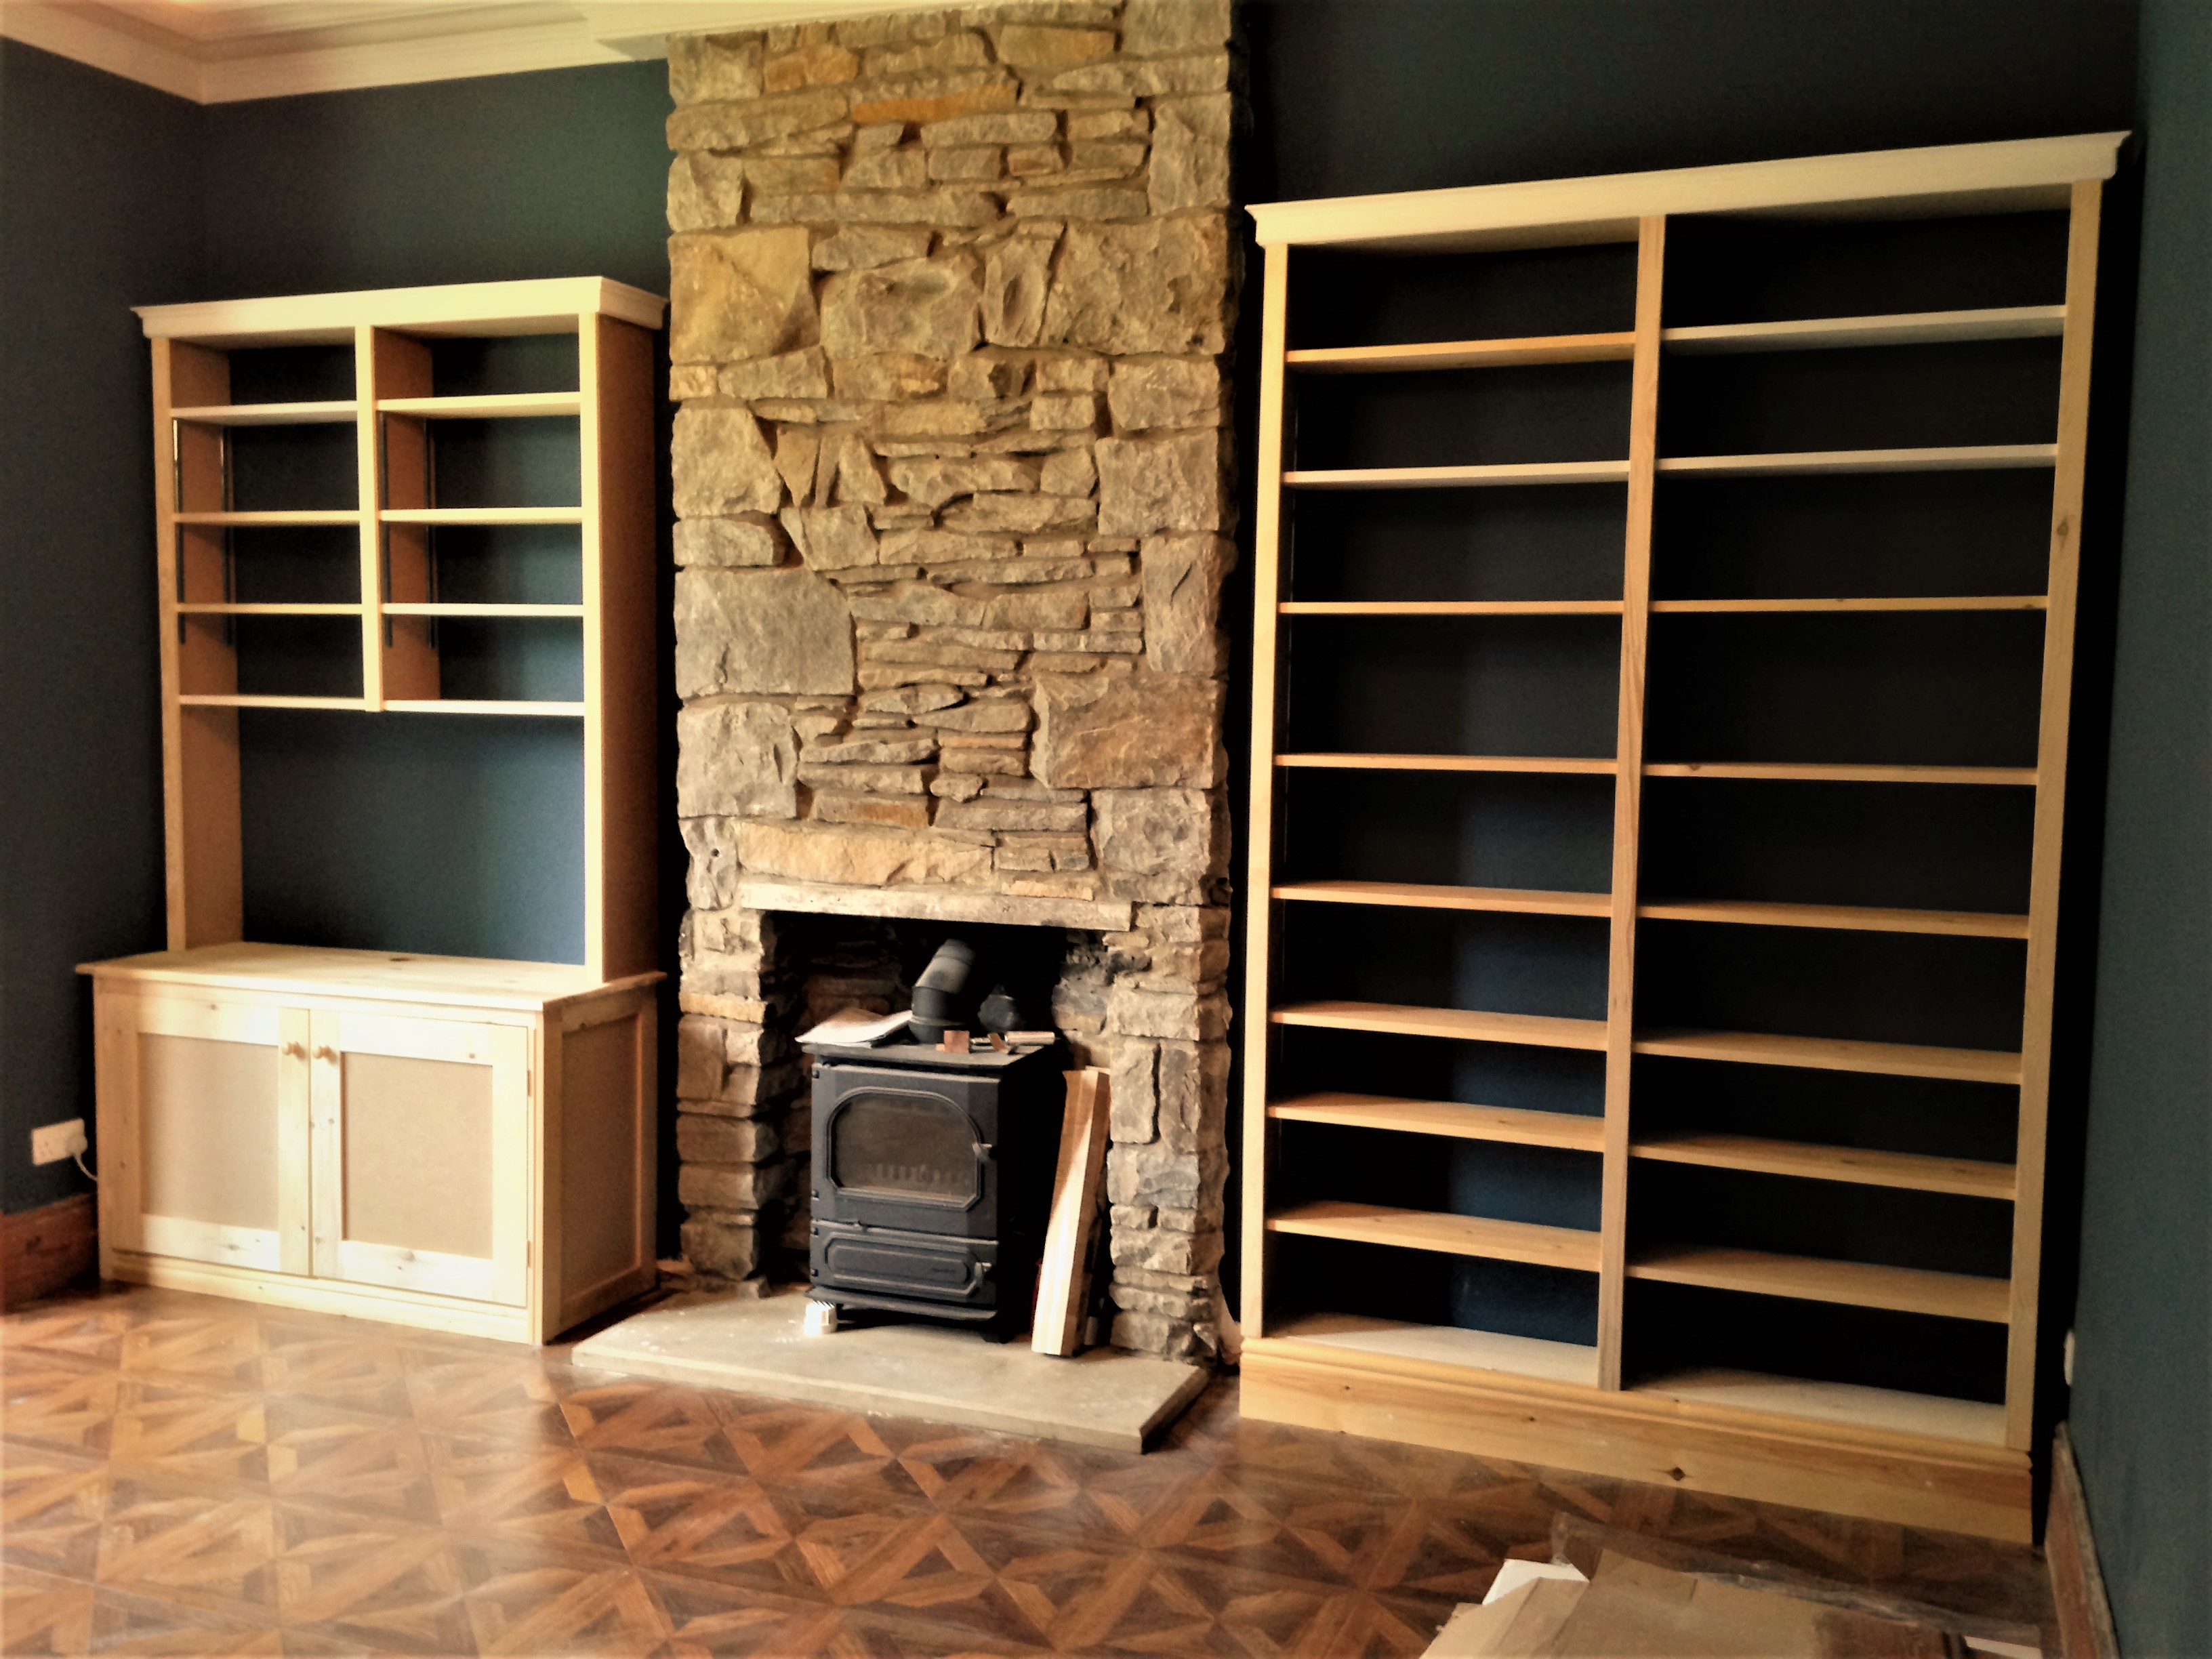 Custom shelving to slot next to a grand fireplace.